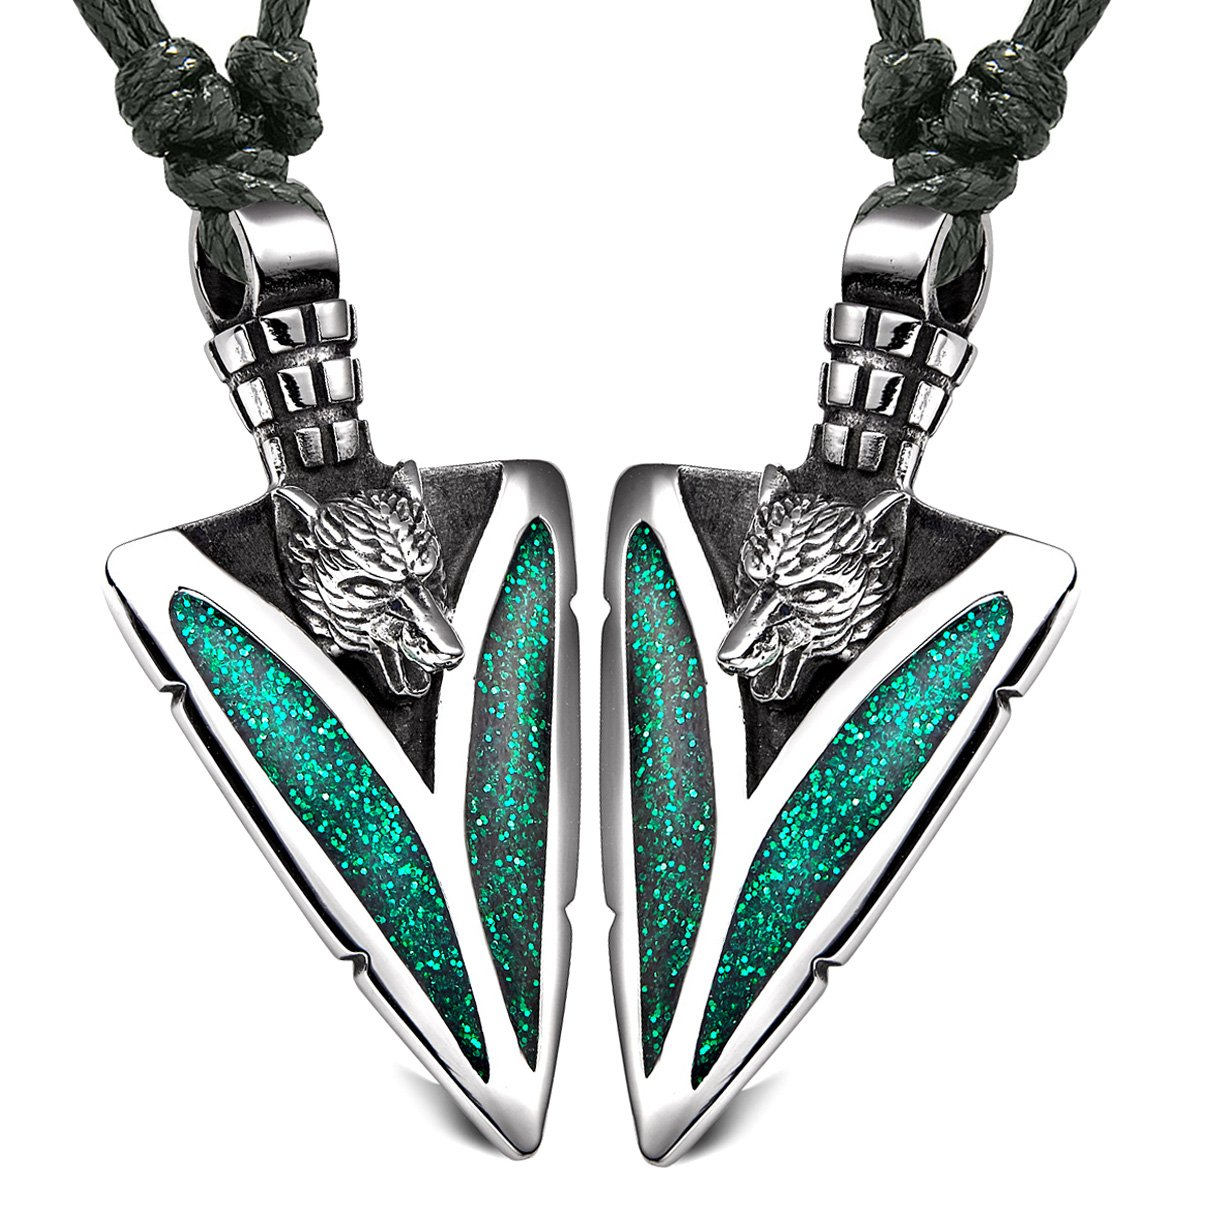 Arrowhead Howling Wolf Love Couples or Best Friends Amulets Set Sparkling Royal Green Adjustable Necklaces